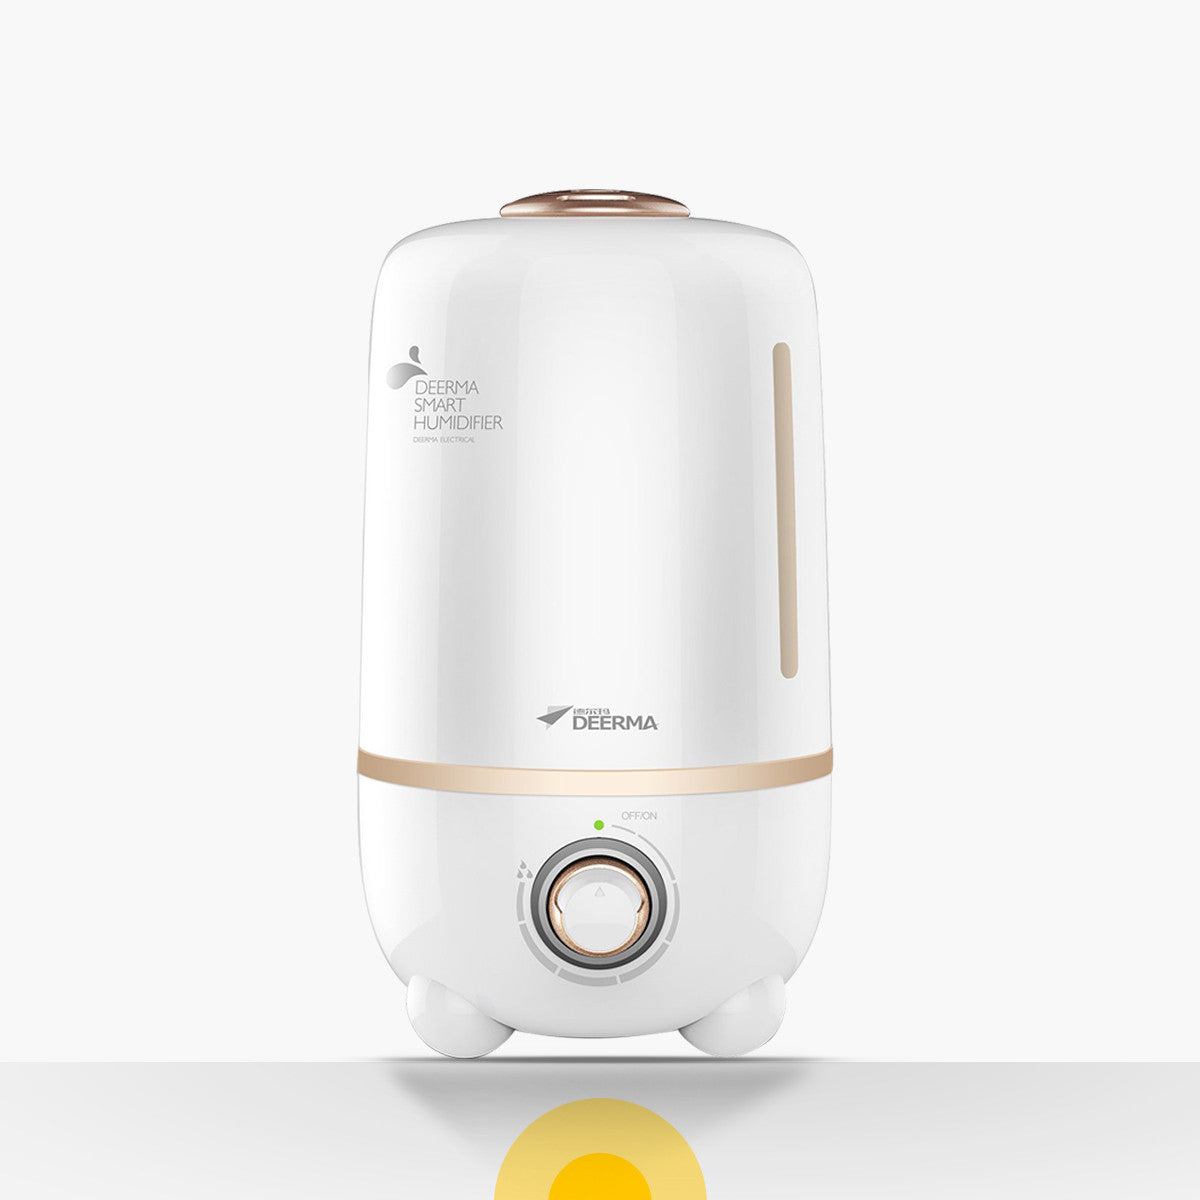 Deerma F450 4L Golden/Black Ultrasonic Humidifier/ Aroma Oil/ SG Plug/ 1 Year SG Warranty